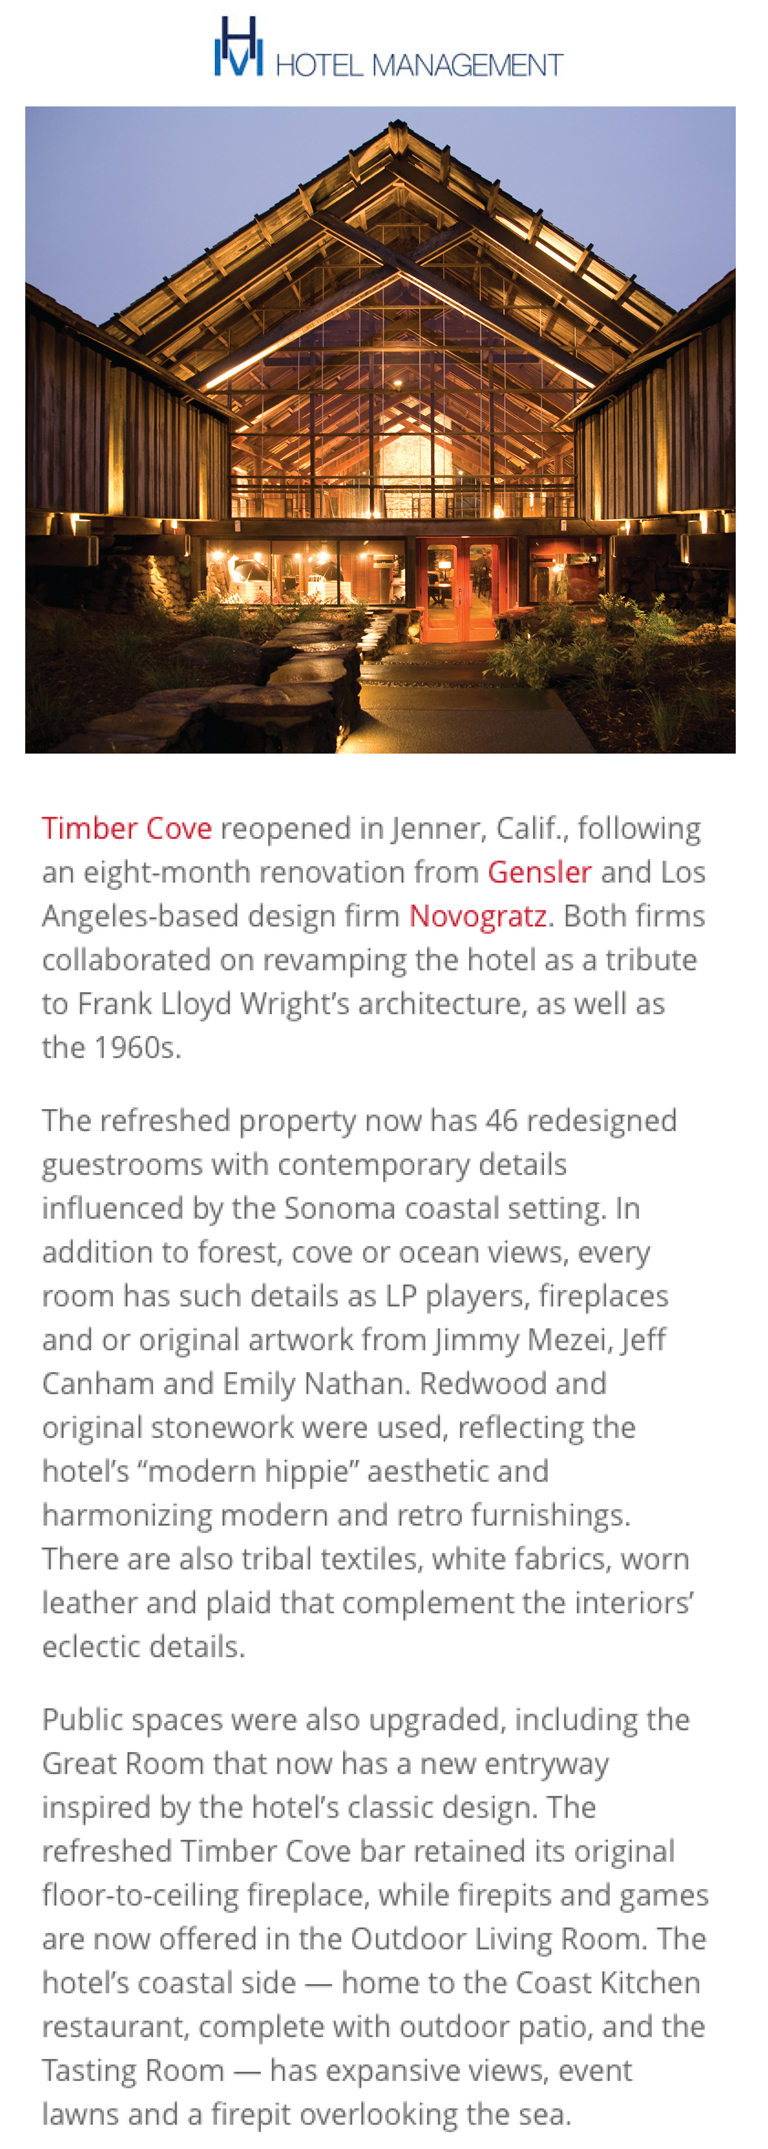 Hotel Management | Timber Cove